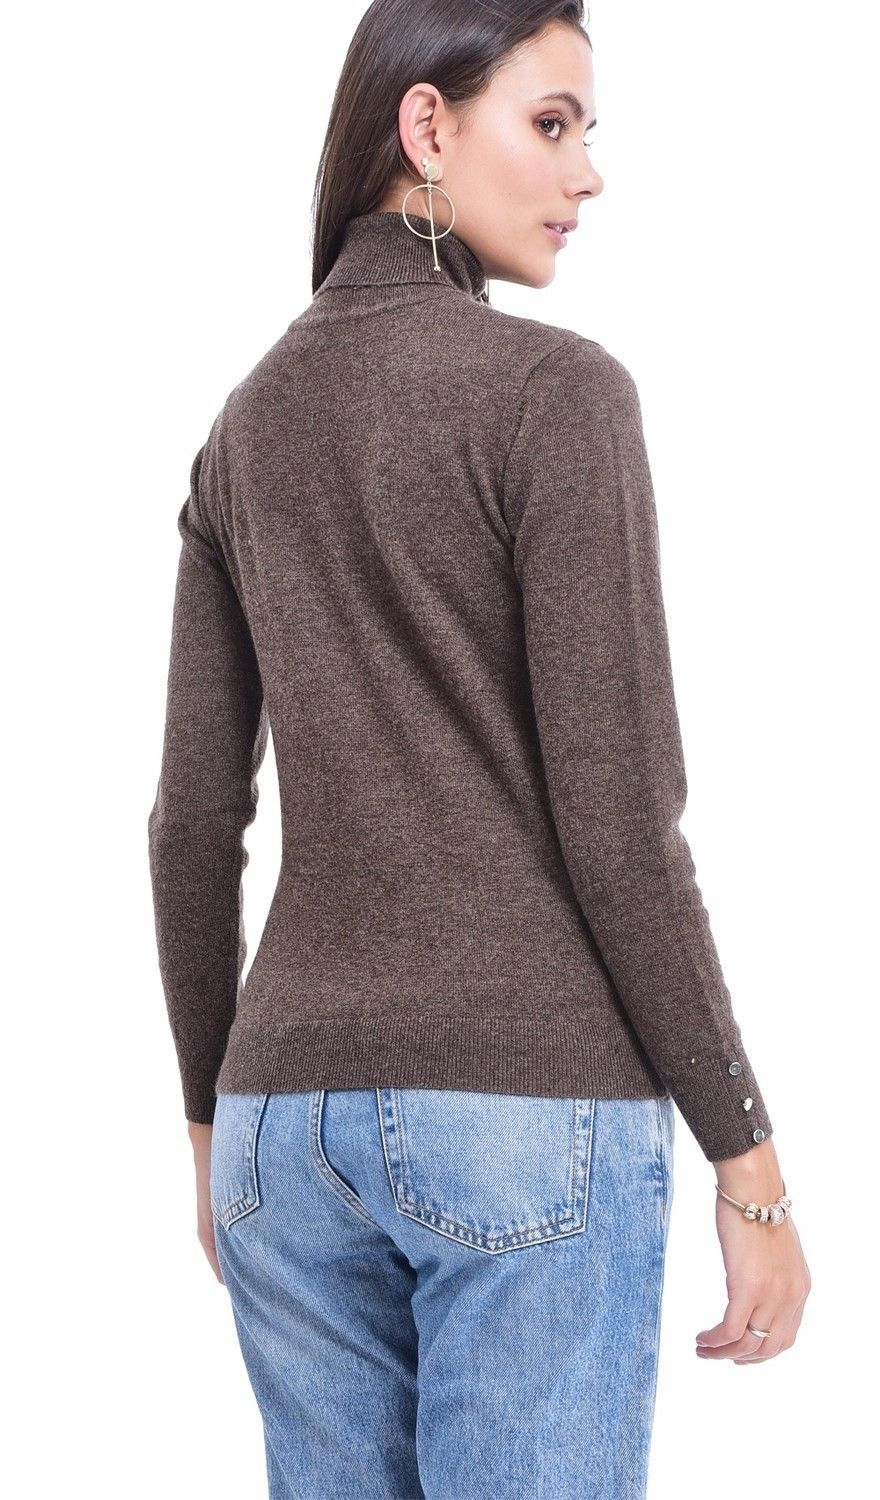 C&JO Turtleneck Sweater with Buttoned Sleeves in Brown